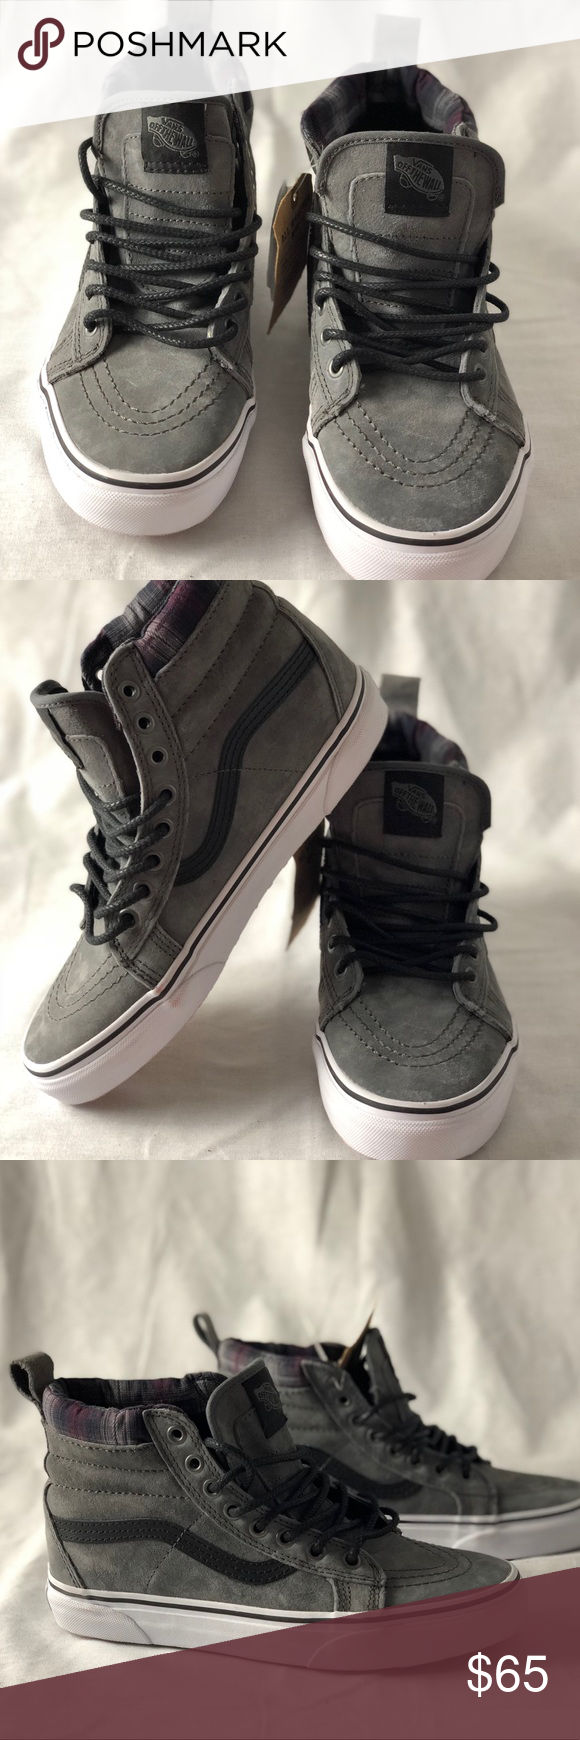 2ec307abfcd7 Vans SK8-Hi MTE Pewter Plaid Grey All Weather skat Vans SK8-Hi MTE Pewter  Plaid Grey All Weather Skate Shoes Women s 8 Men s 6.5 New with Box.